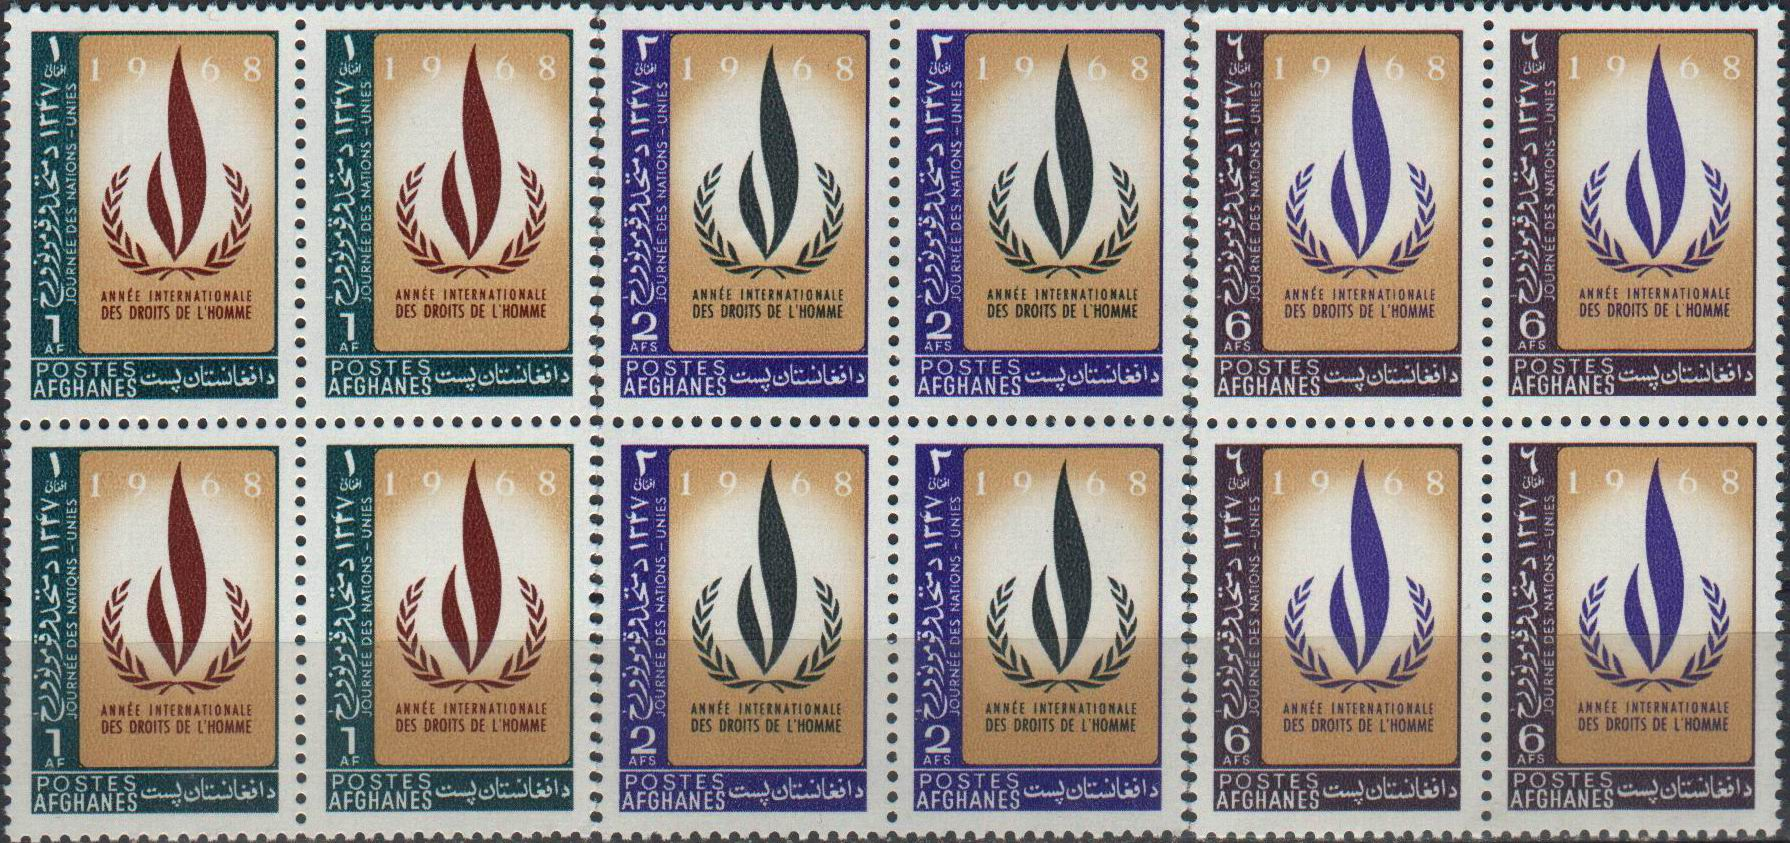 Afghanistan 1968 Stamps International Year Of Human Rights MNH